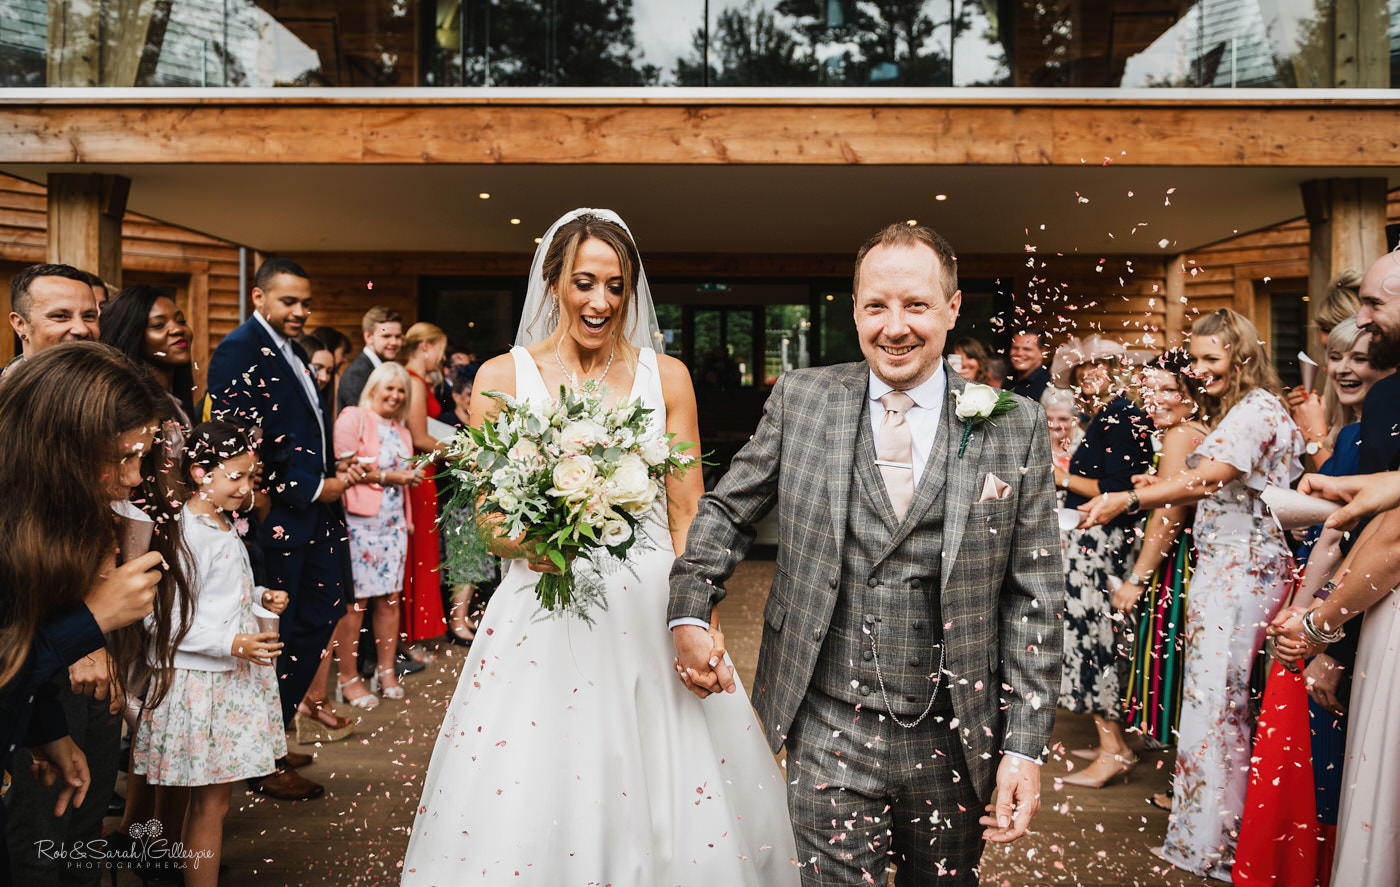 Confetti thrown at wedding. Mill Barns wedding photography